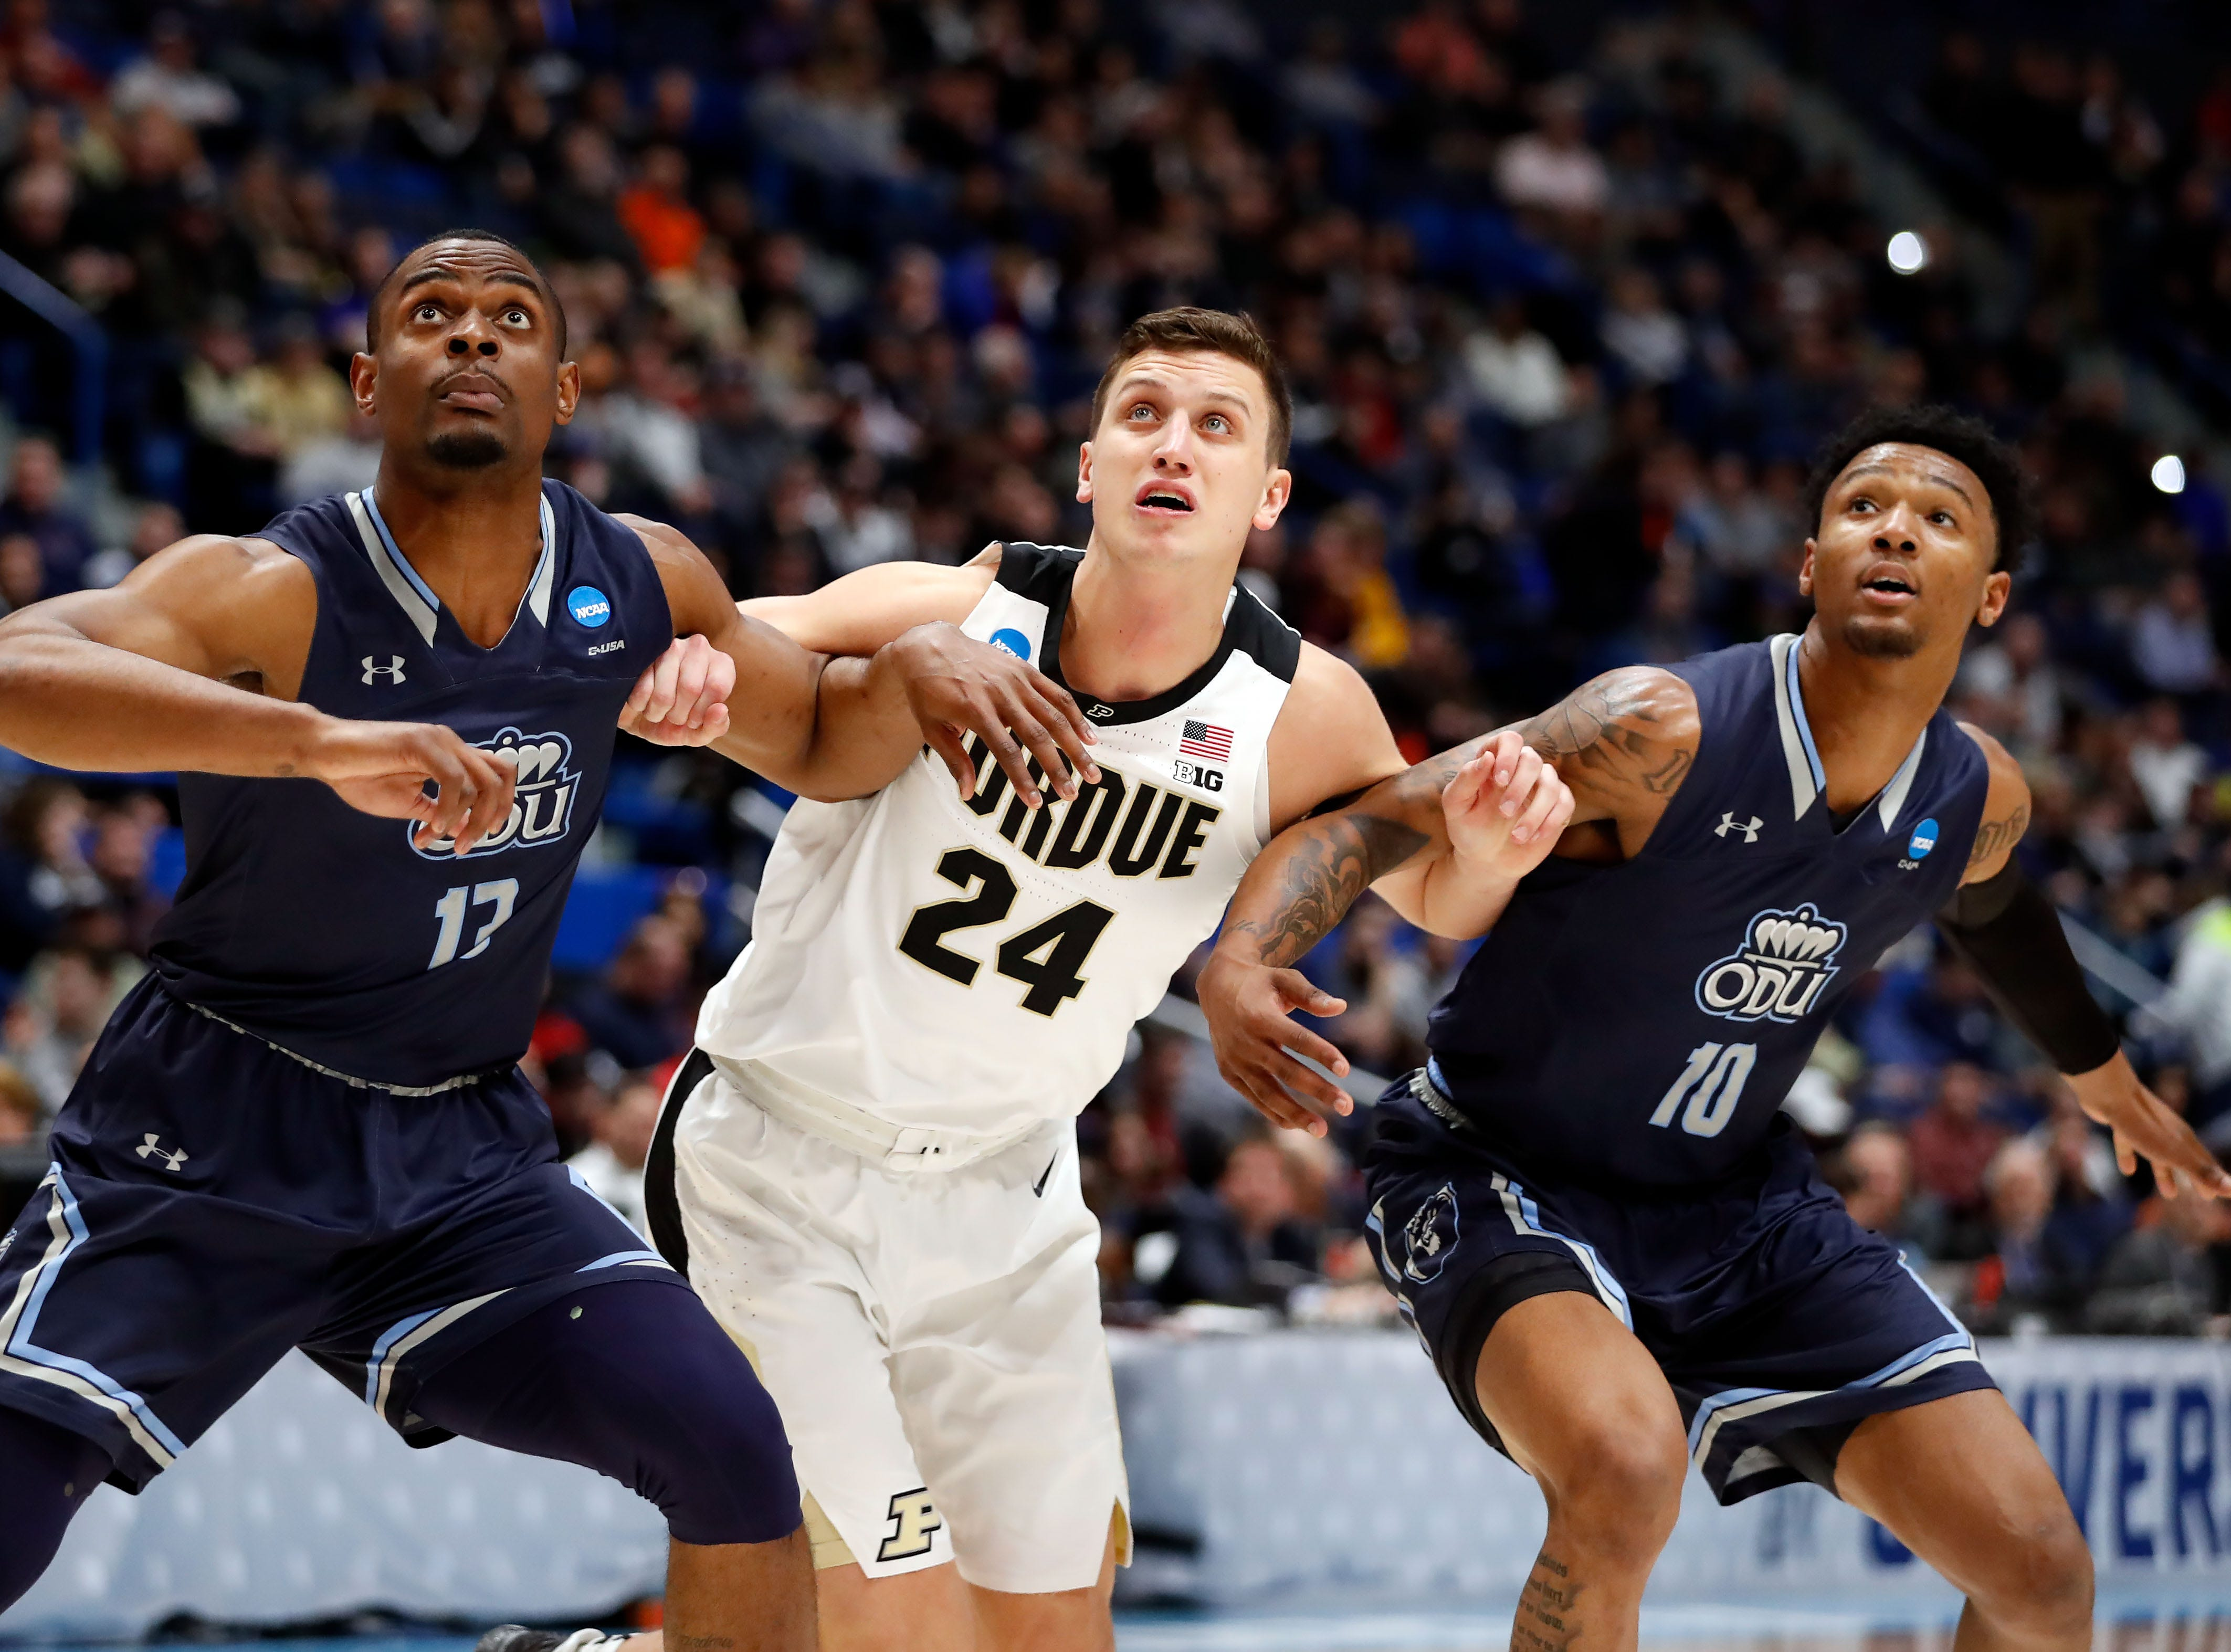 Boilermakers forward Grady Eifert (24) watches a free throw in between Old Dominion Monarchs guard Xavier Green (10) and forward Aaron Carver (13) during the first half of a game in the first round of the 2019 NCAA Tournament at XL Center.